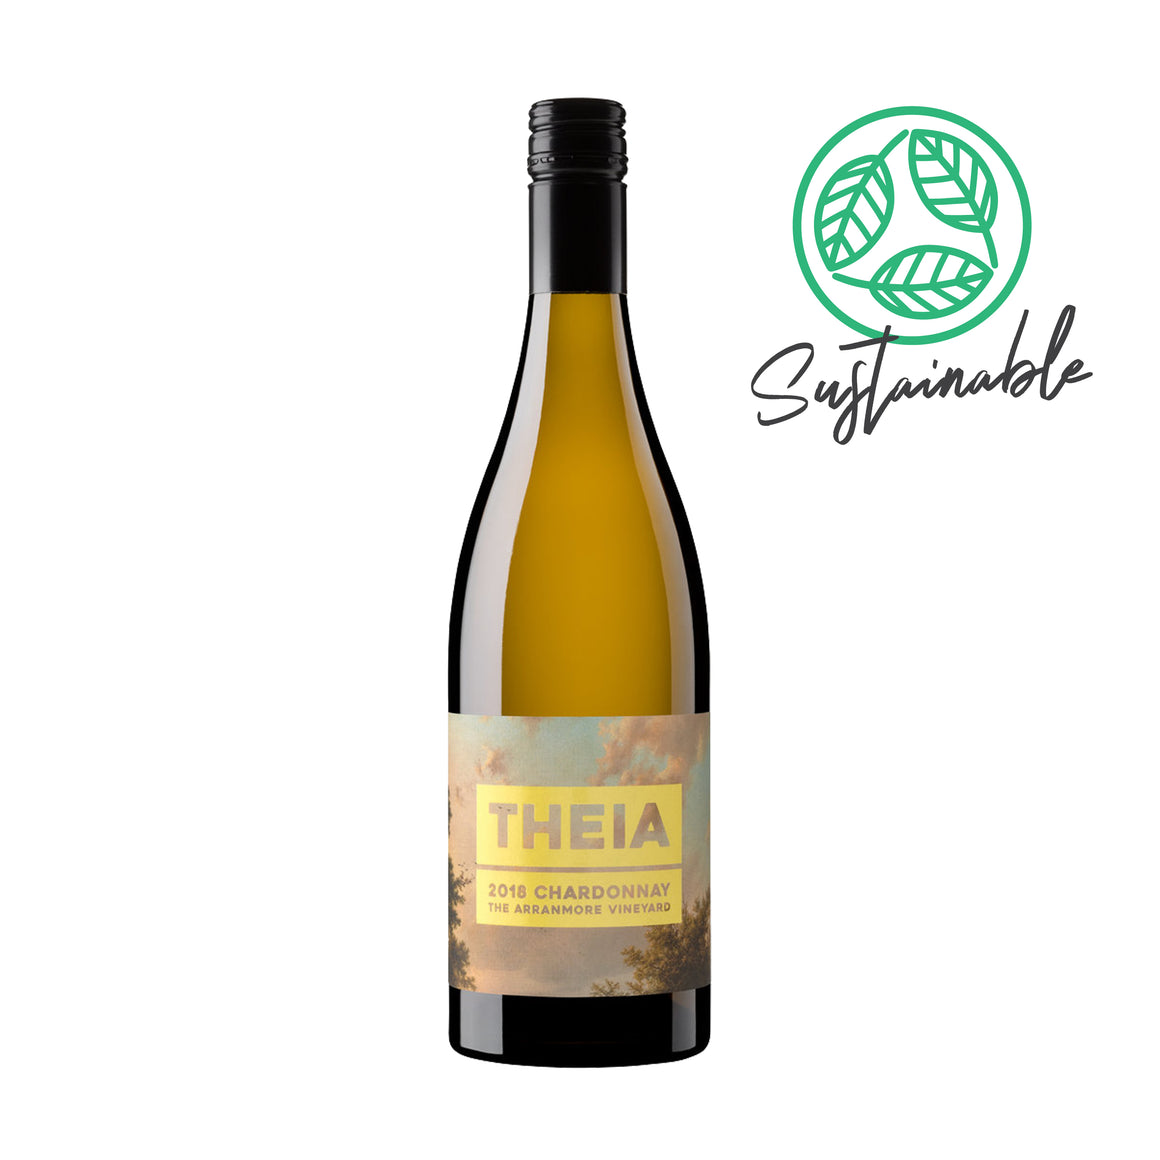 CRFT THEIA CHARDONNAY ARRANMORE VINEYARD 2018